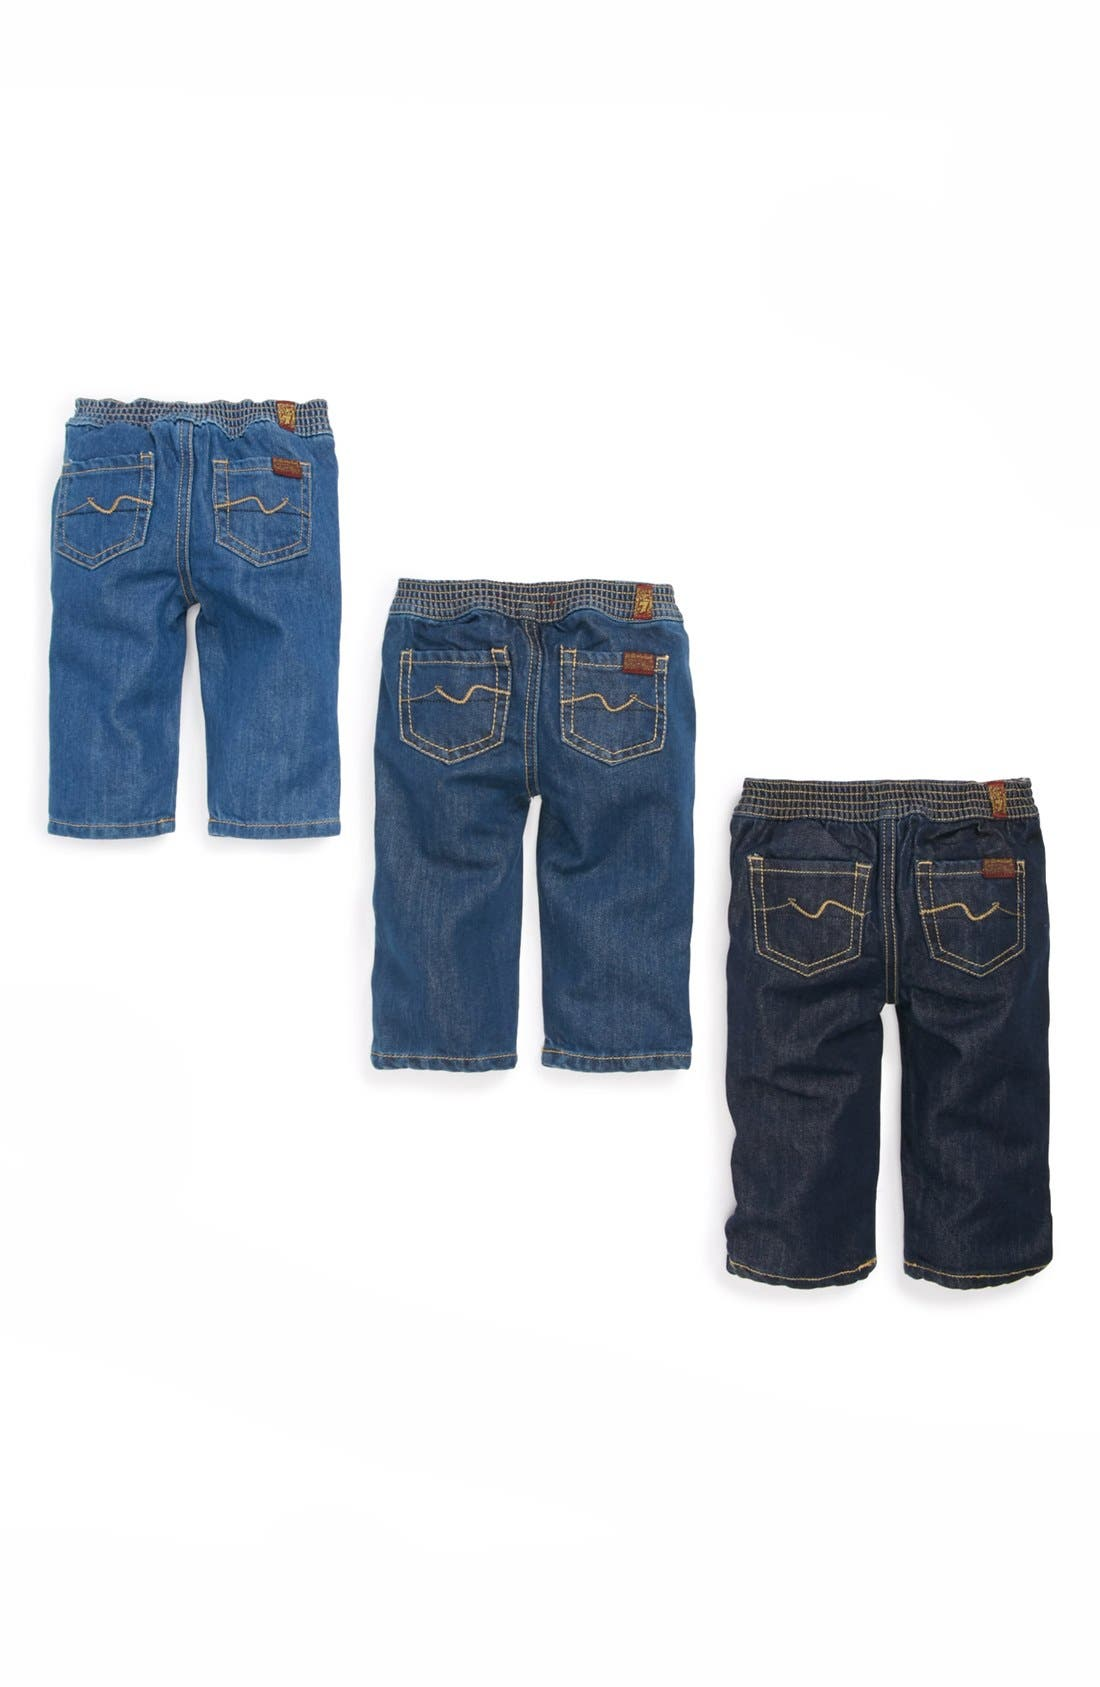 Main Image - 7 For All Mankind® Denim Jeans (3-Pack) (Baby)